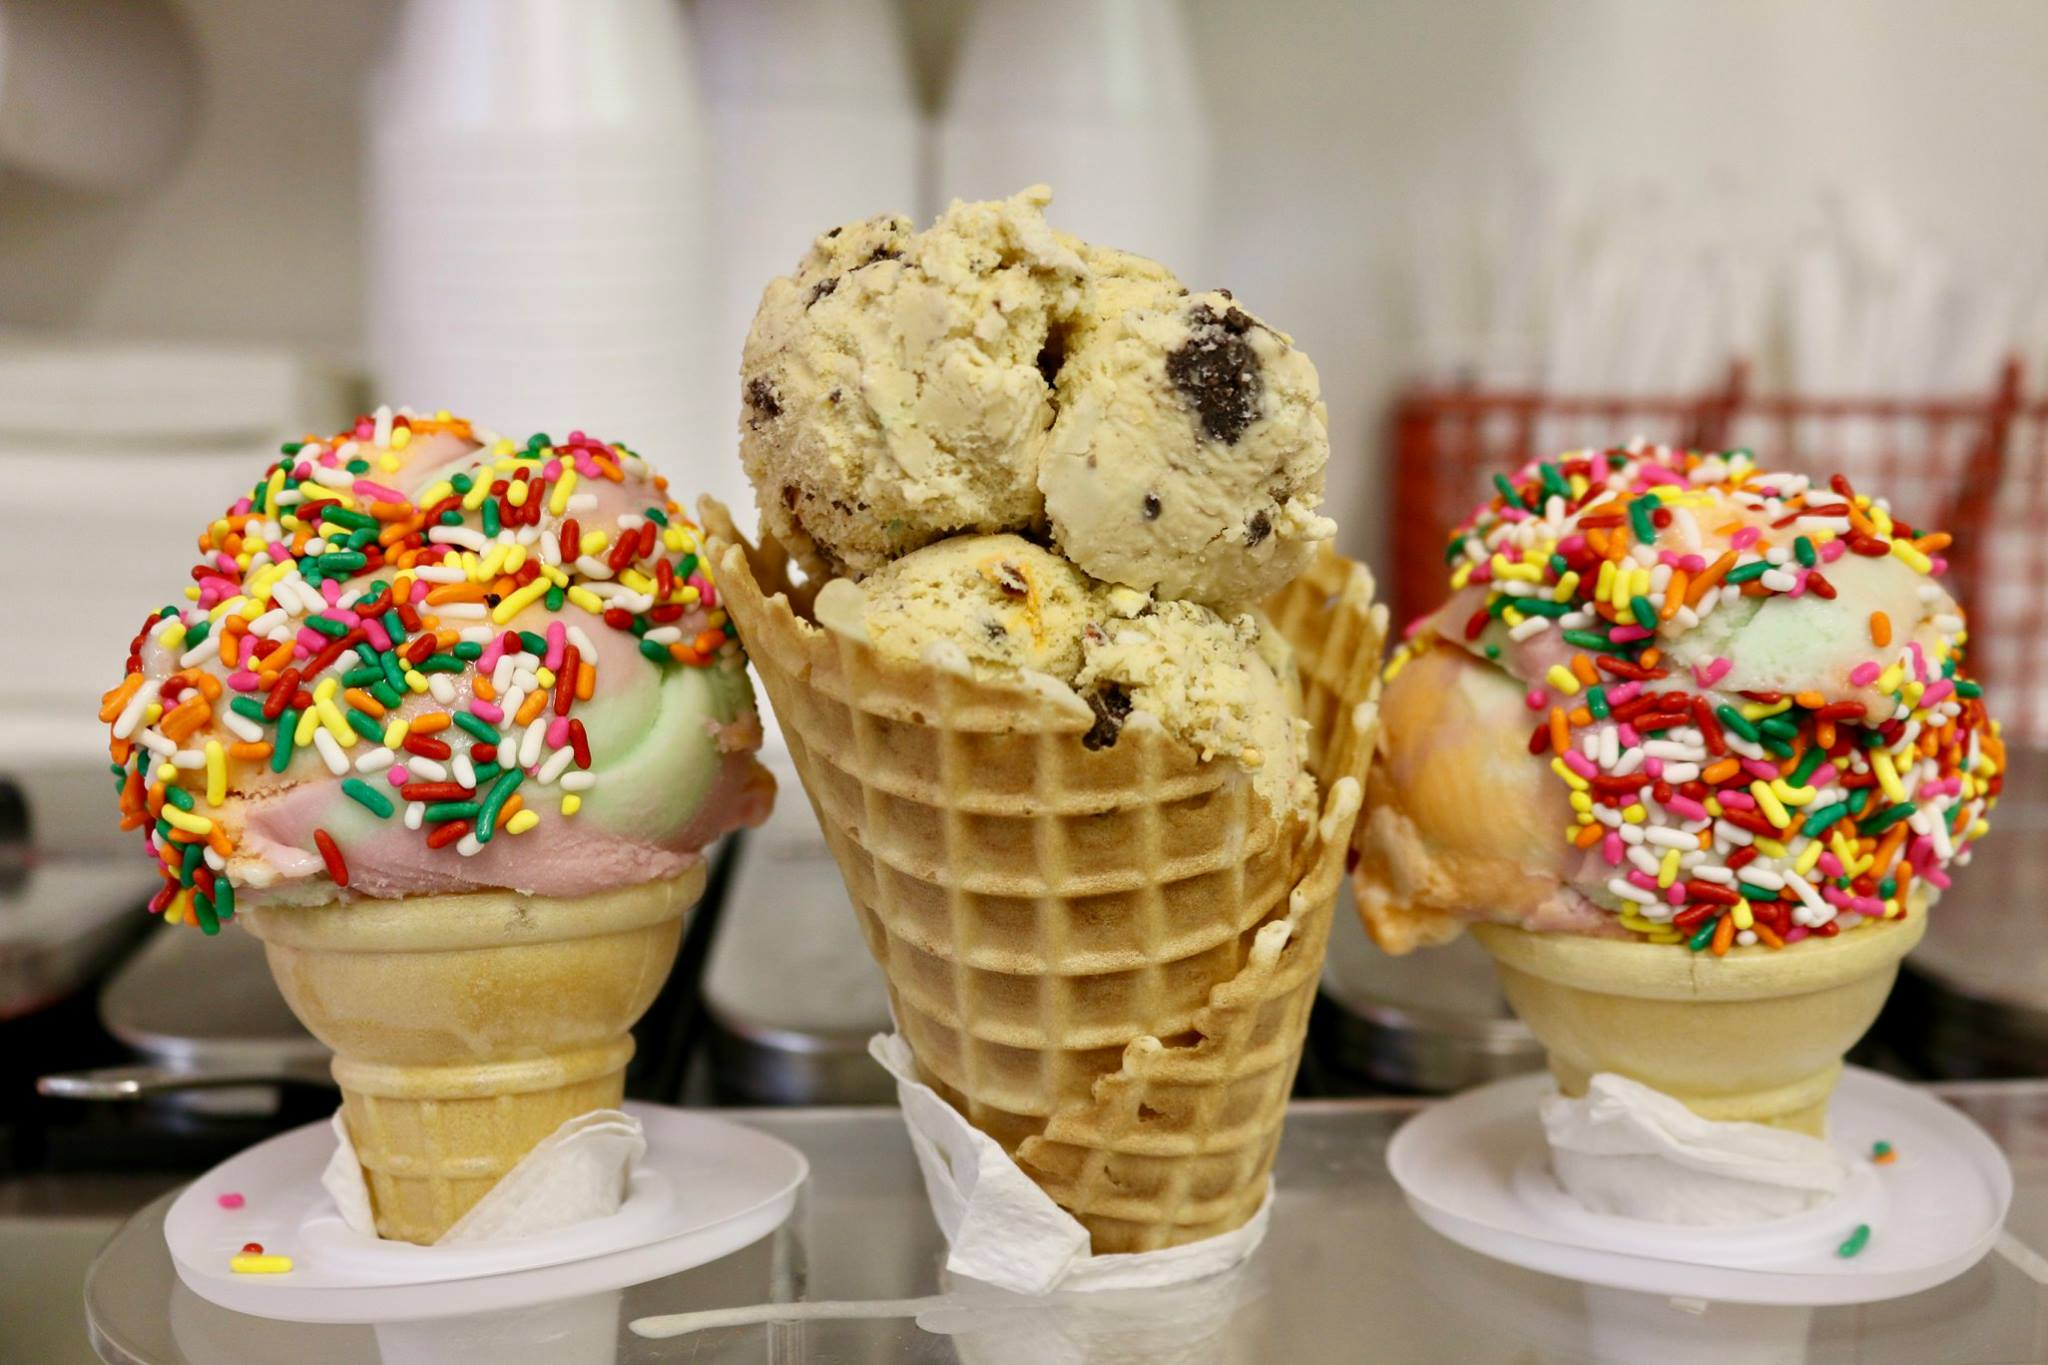 Pictured: Dipped ice cream in cake cones and waffle cones with rainbow sprinkles